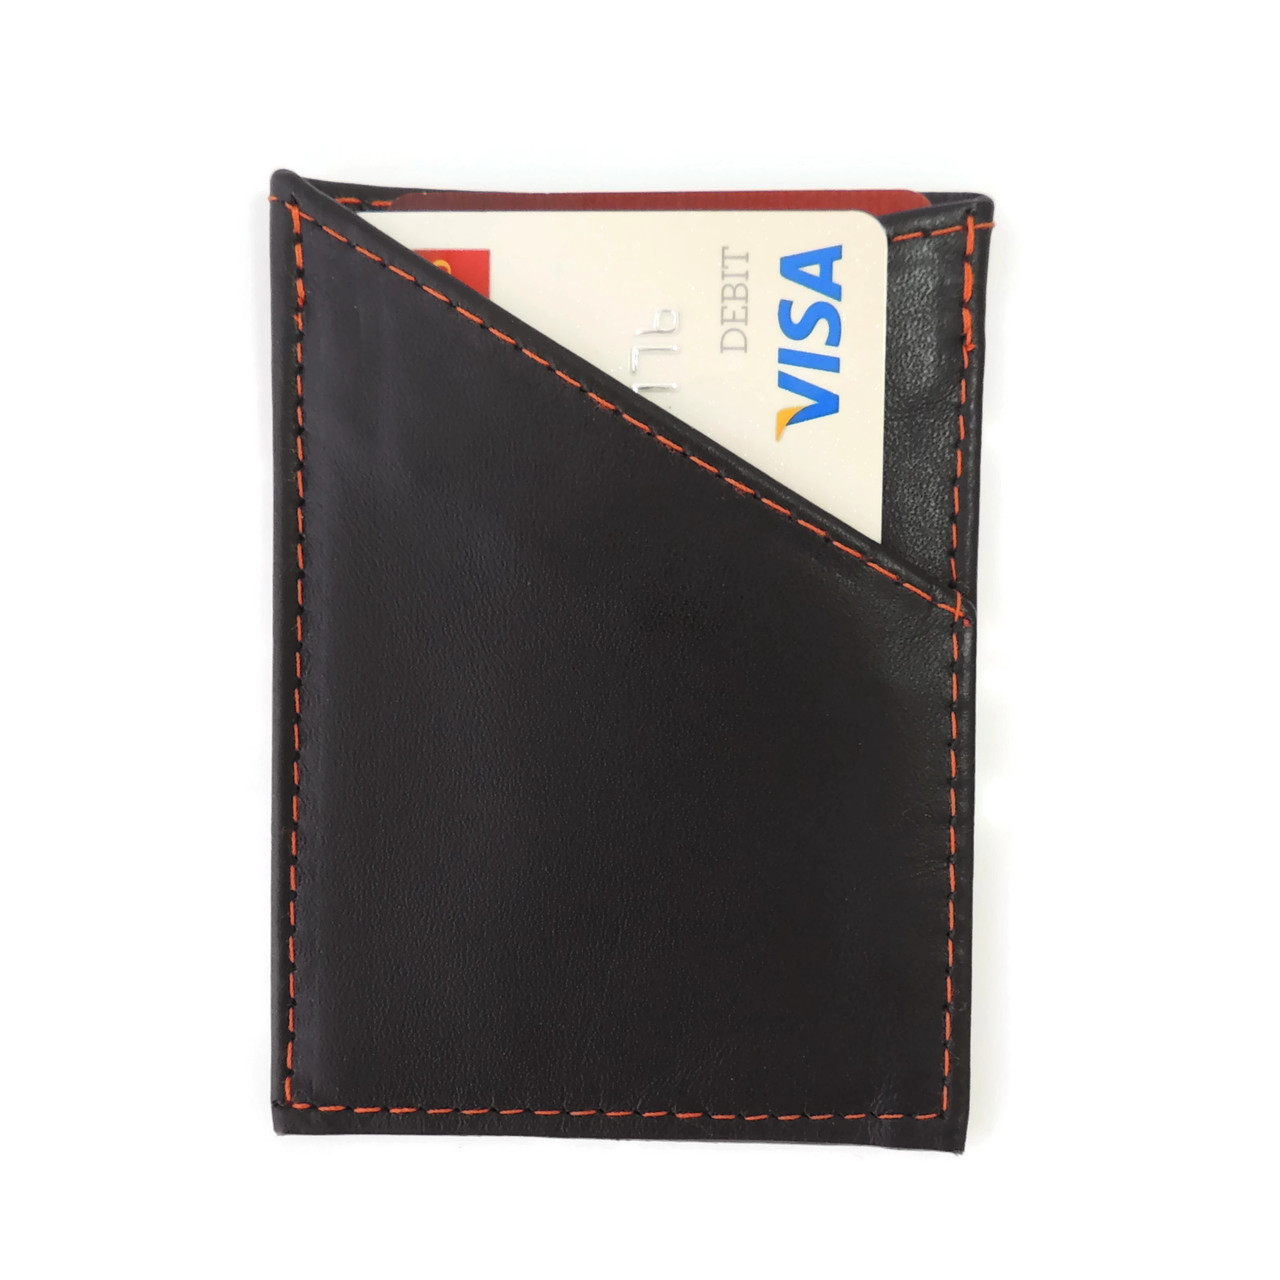 Card Case in Black Leather with Orange Stitching